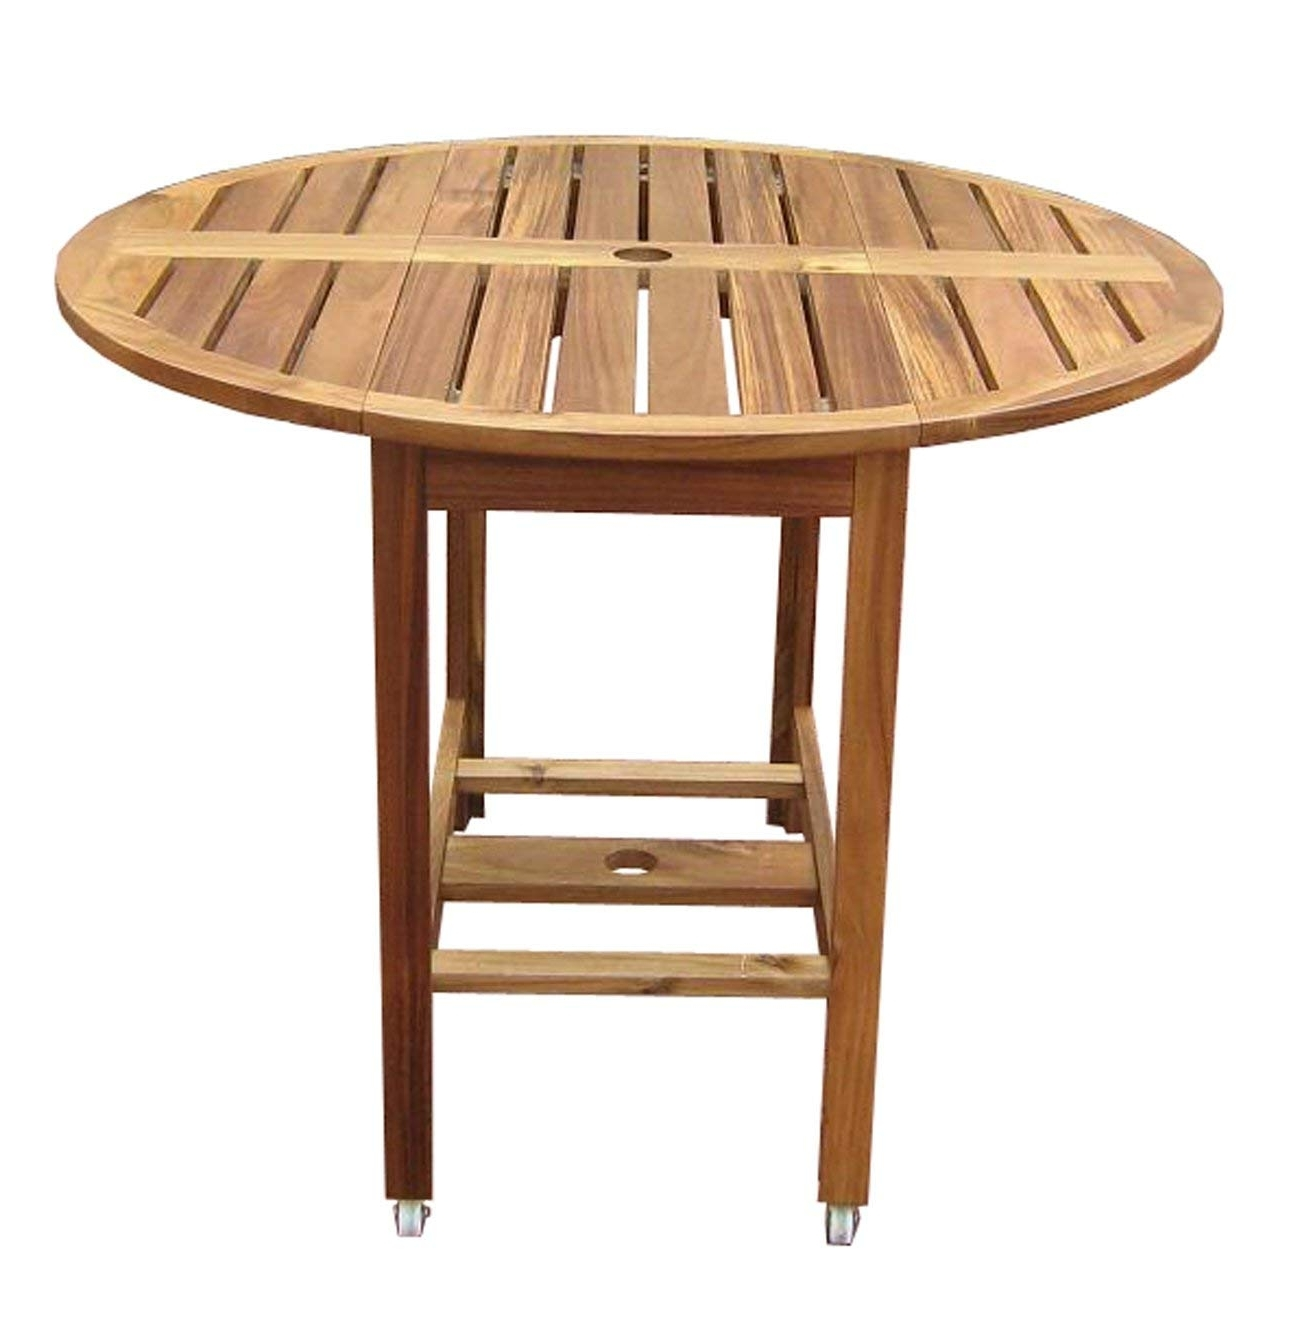 Folding Dining Tables Pertaining To 2018 Amazon : Merry Garden Acacia Folding Dining Table : Folding (View 12 of 25)